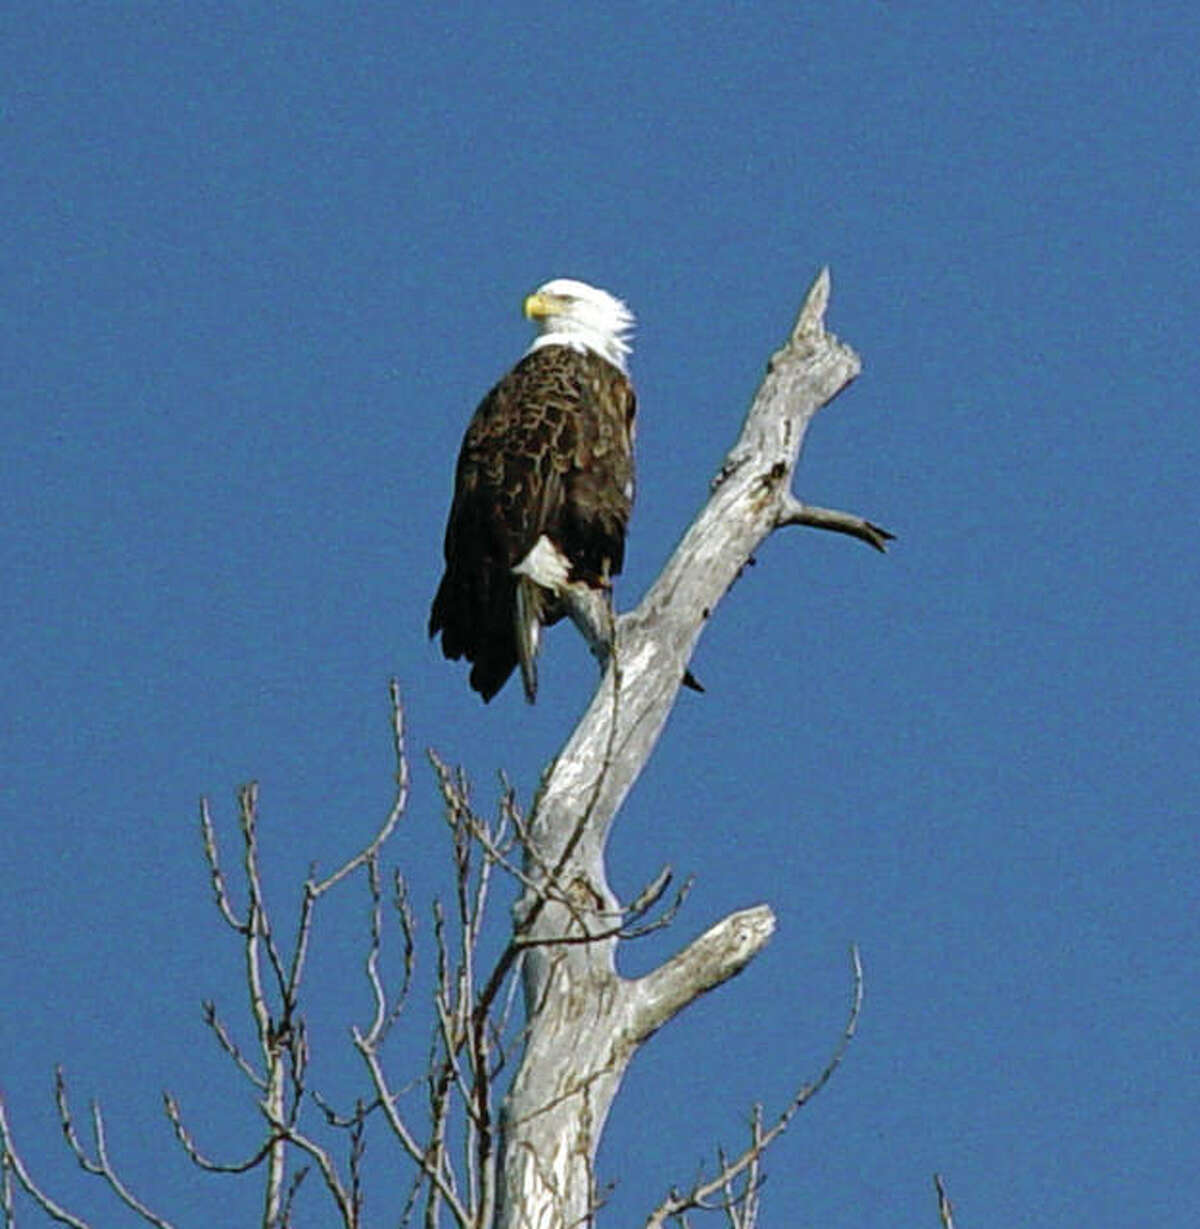 A lone eagle at the tip-top of a tree, just across the river in the Missouri wetlands.